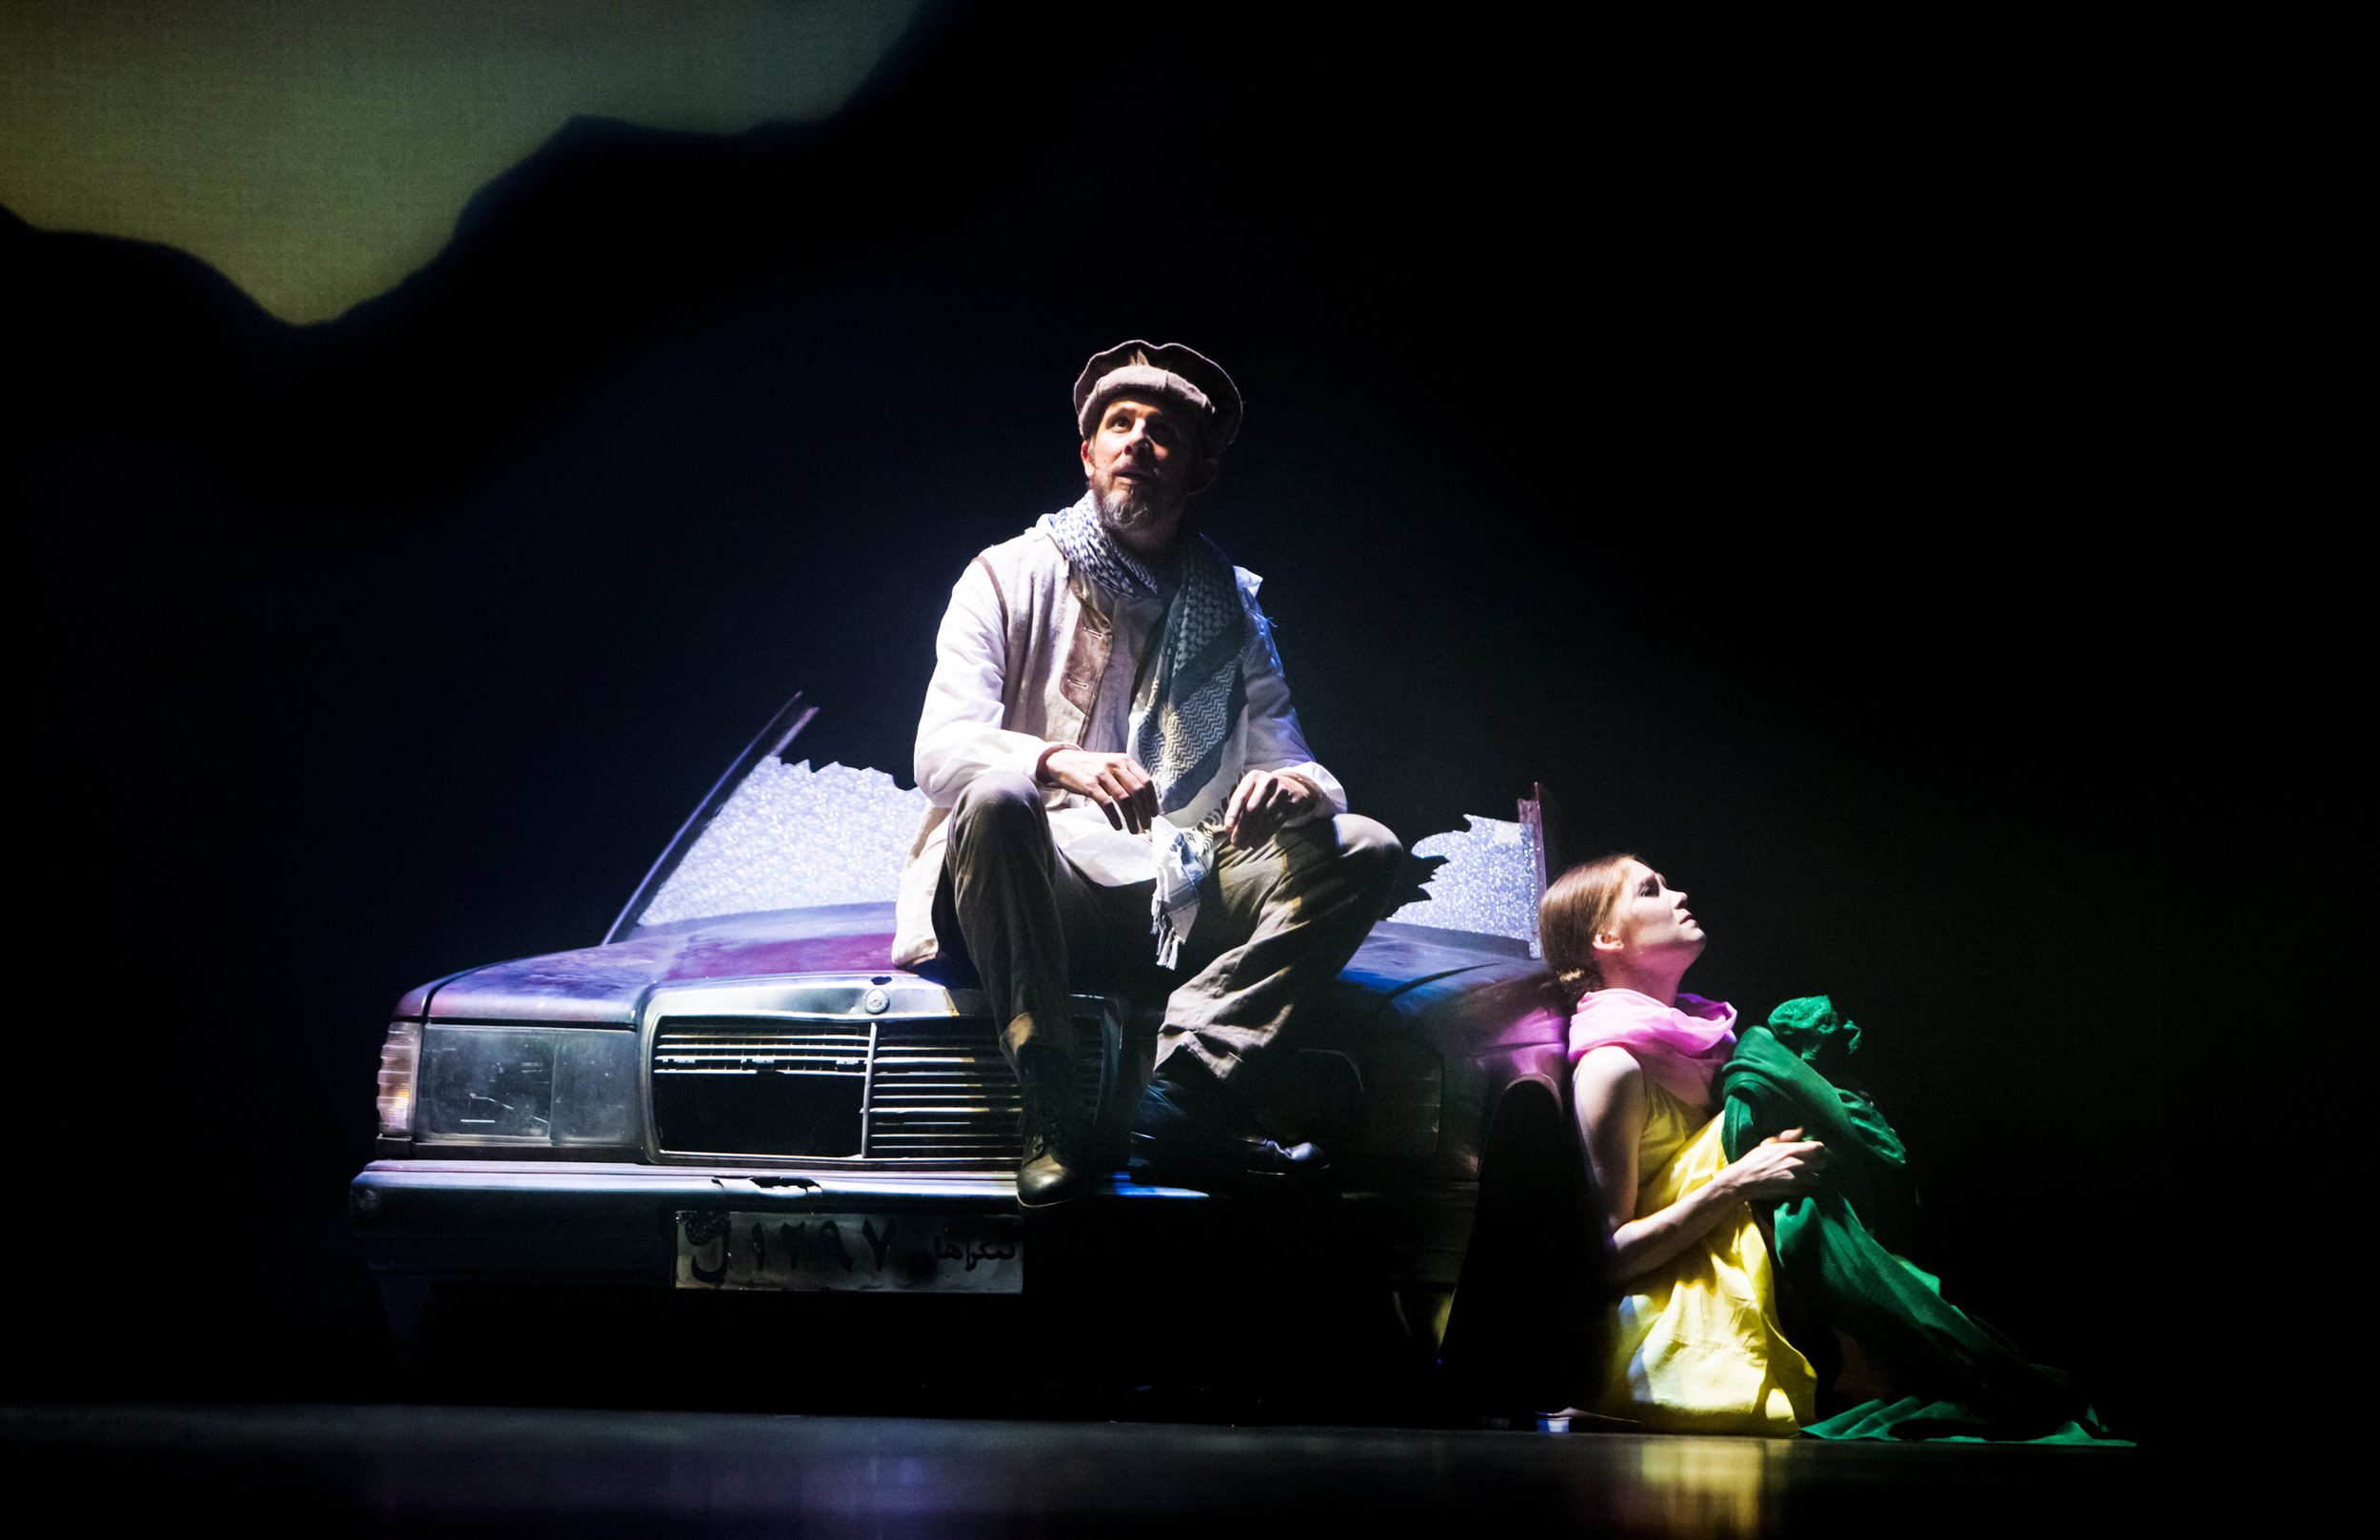 Khwaja - Homebody (Colin Benders) with dancer Erica Horwood